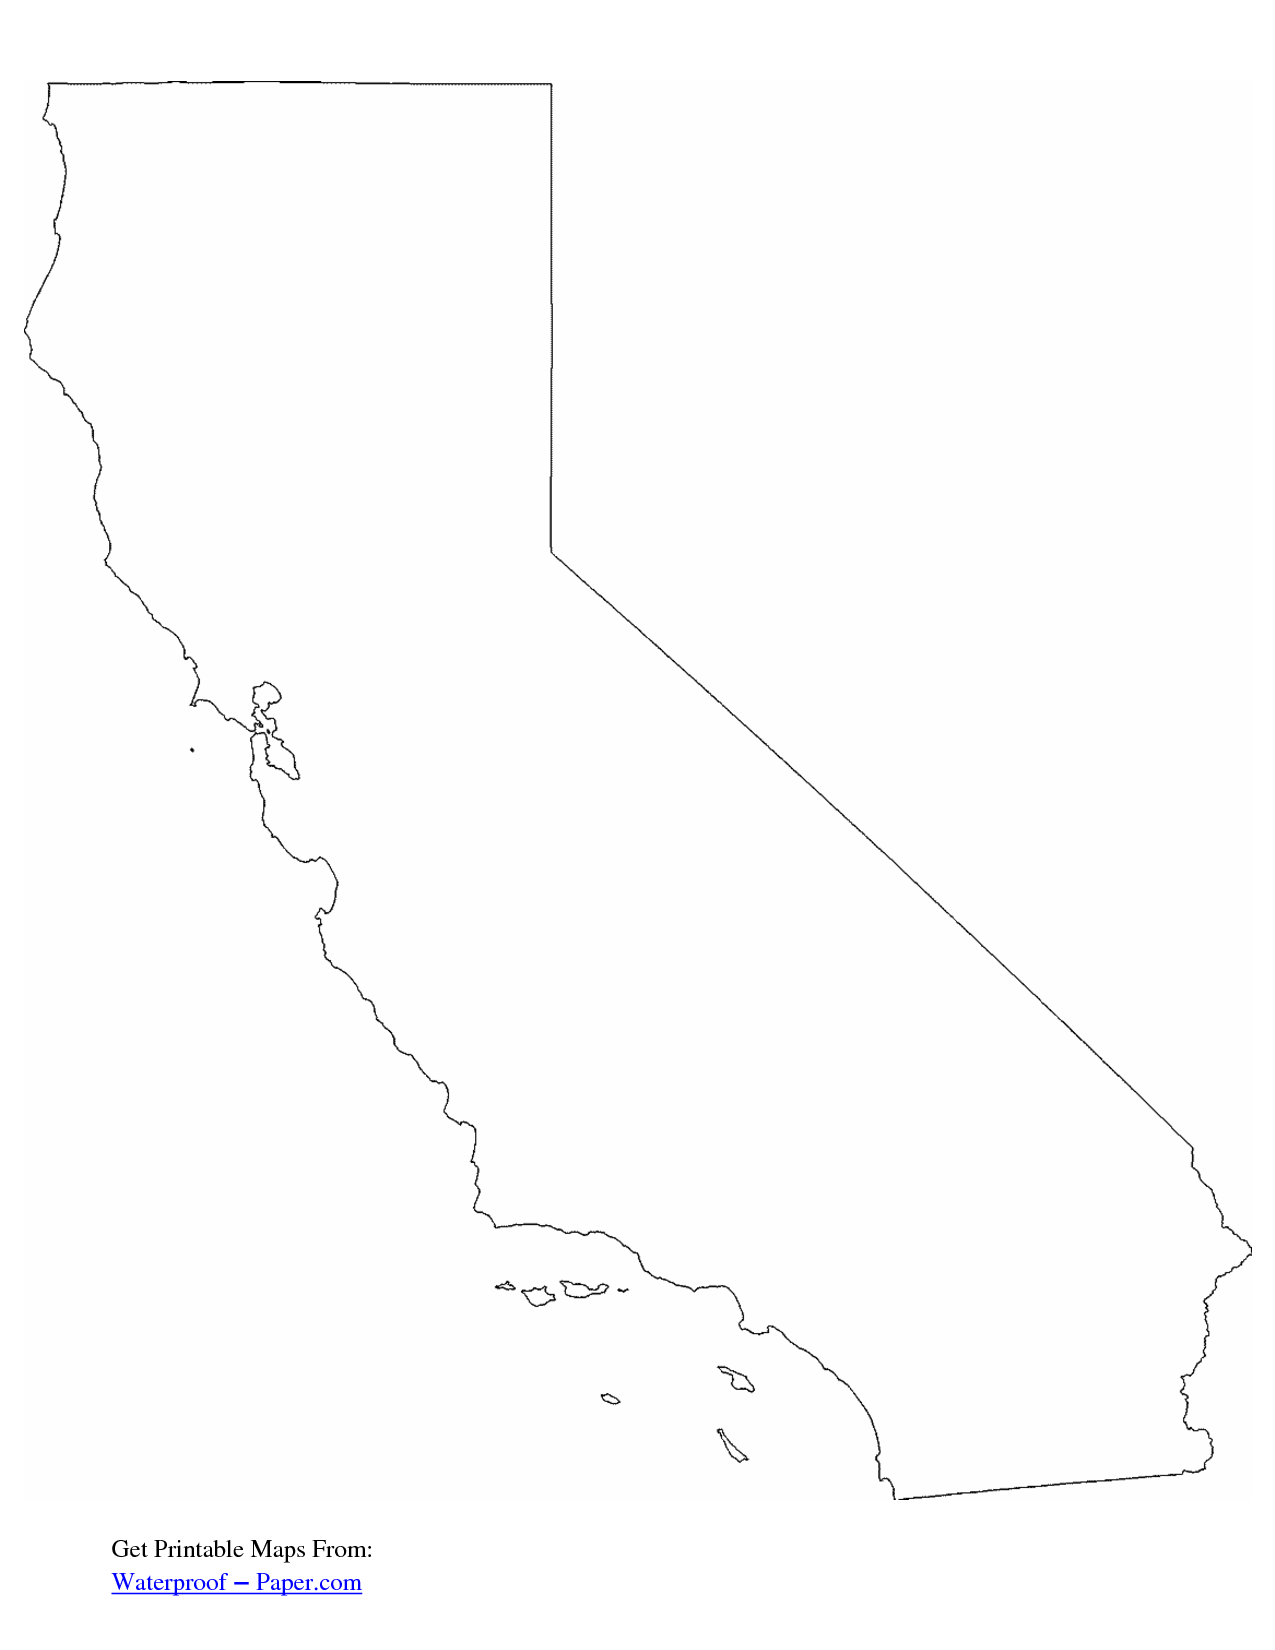 California free state printables | Free printable California